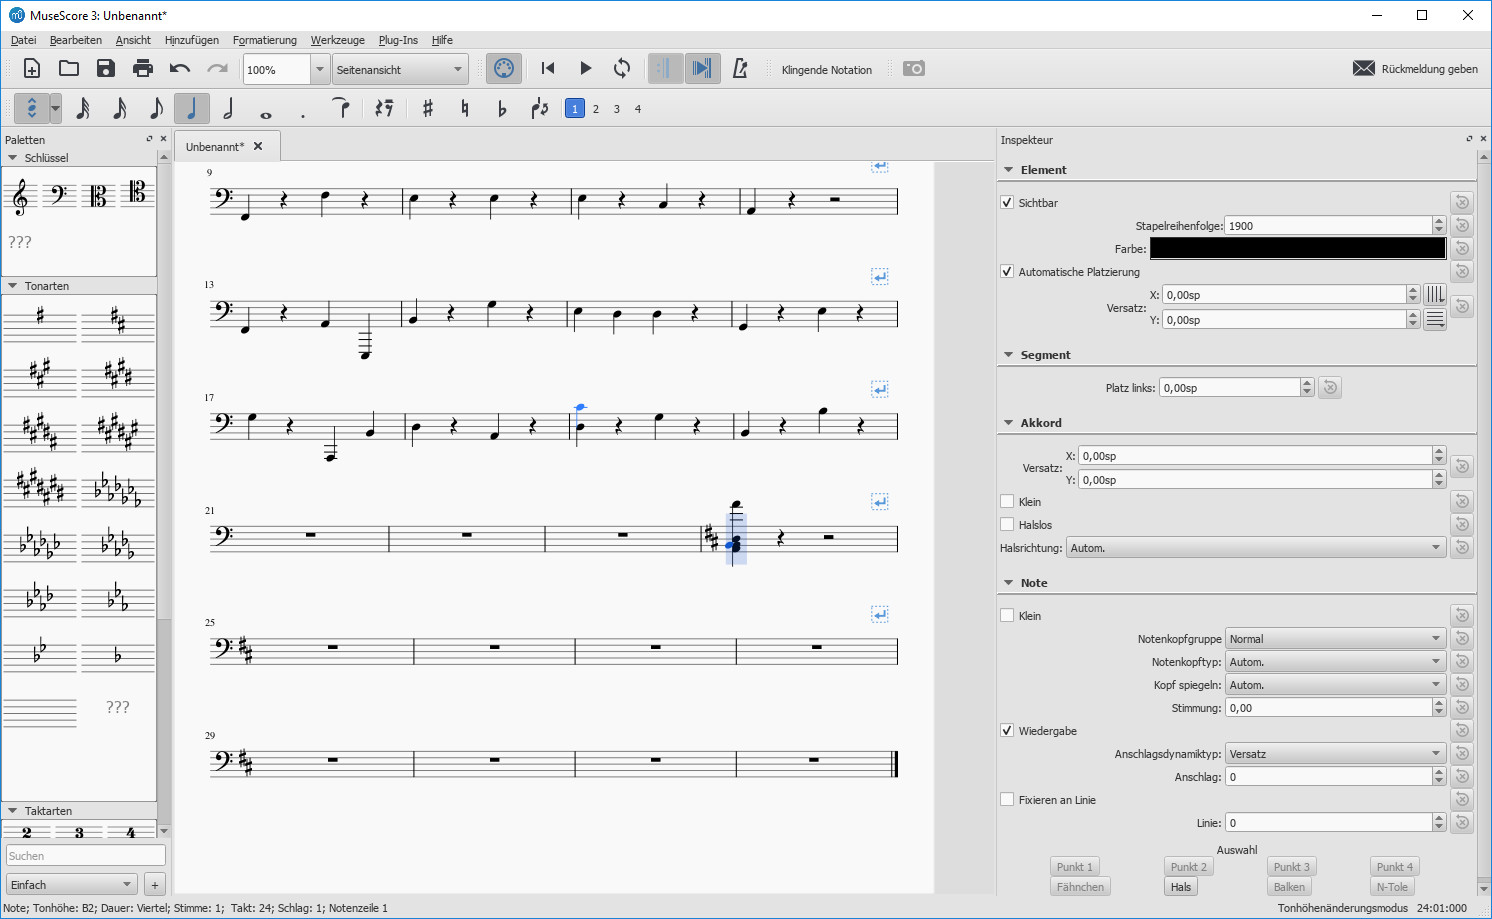 Screenshot 1 - MuseScore